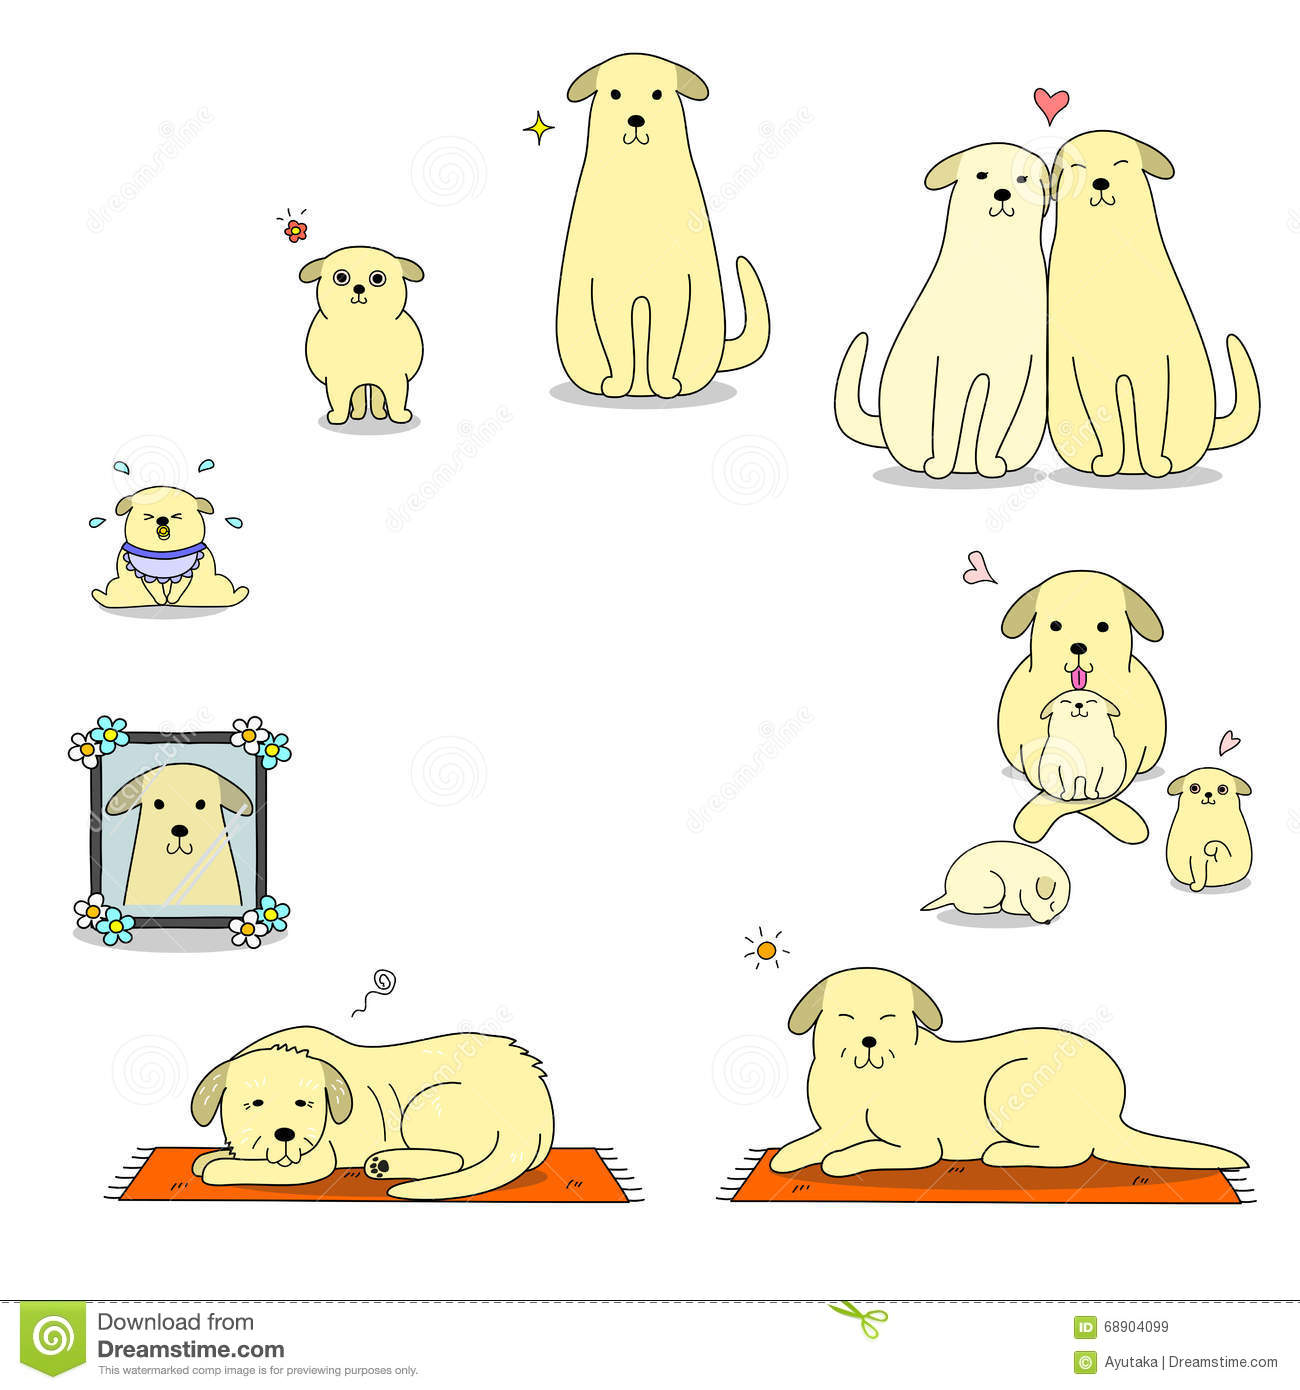 Dog life cycle clipart graphic freeuse stock Dog's Life Cycle Stock Vector - Image: 68904099 graphic freeuse stock